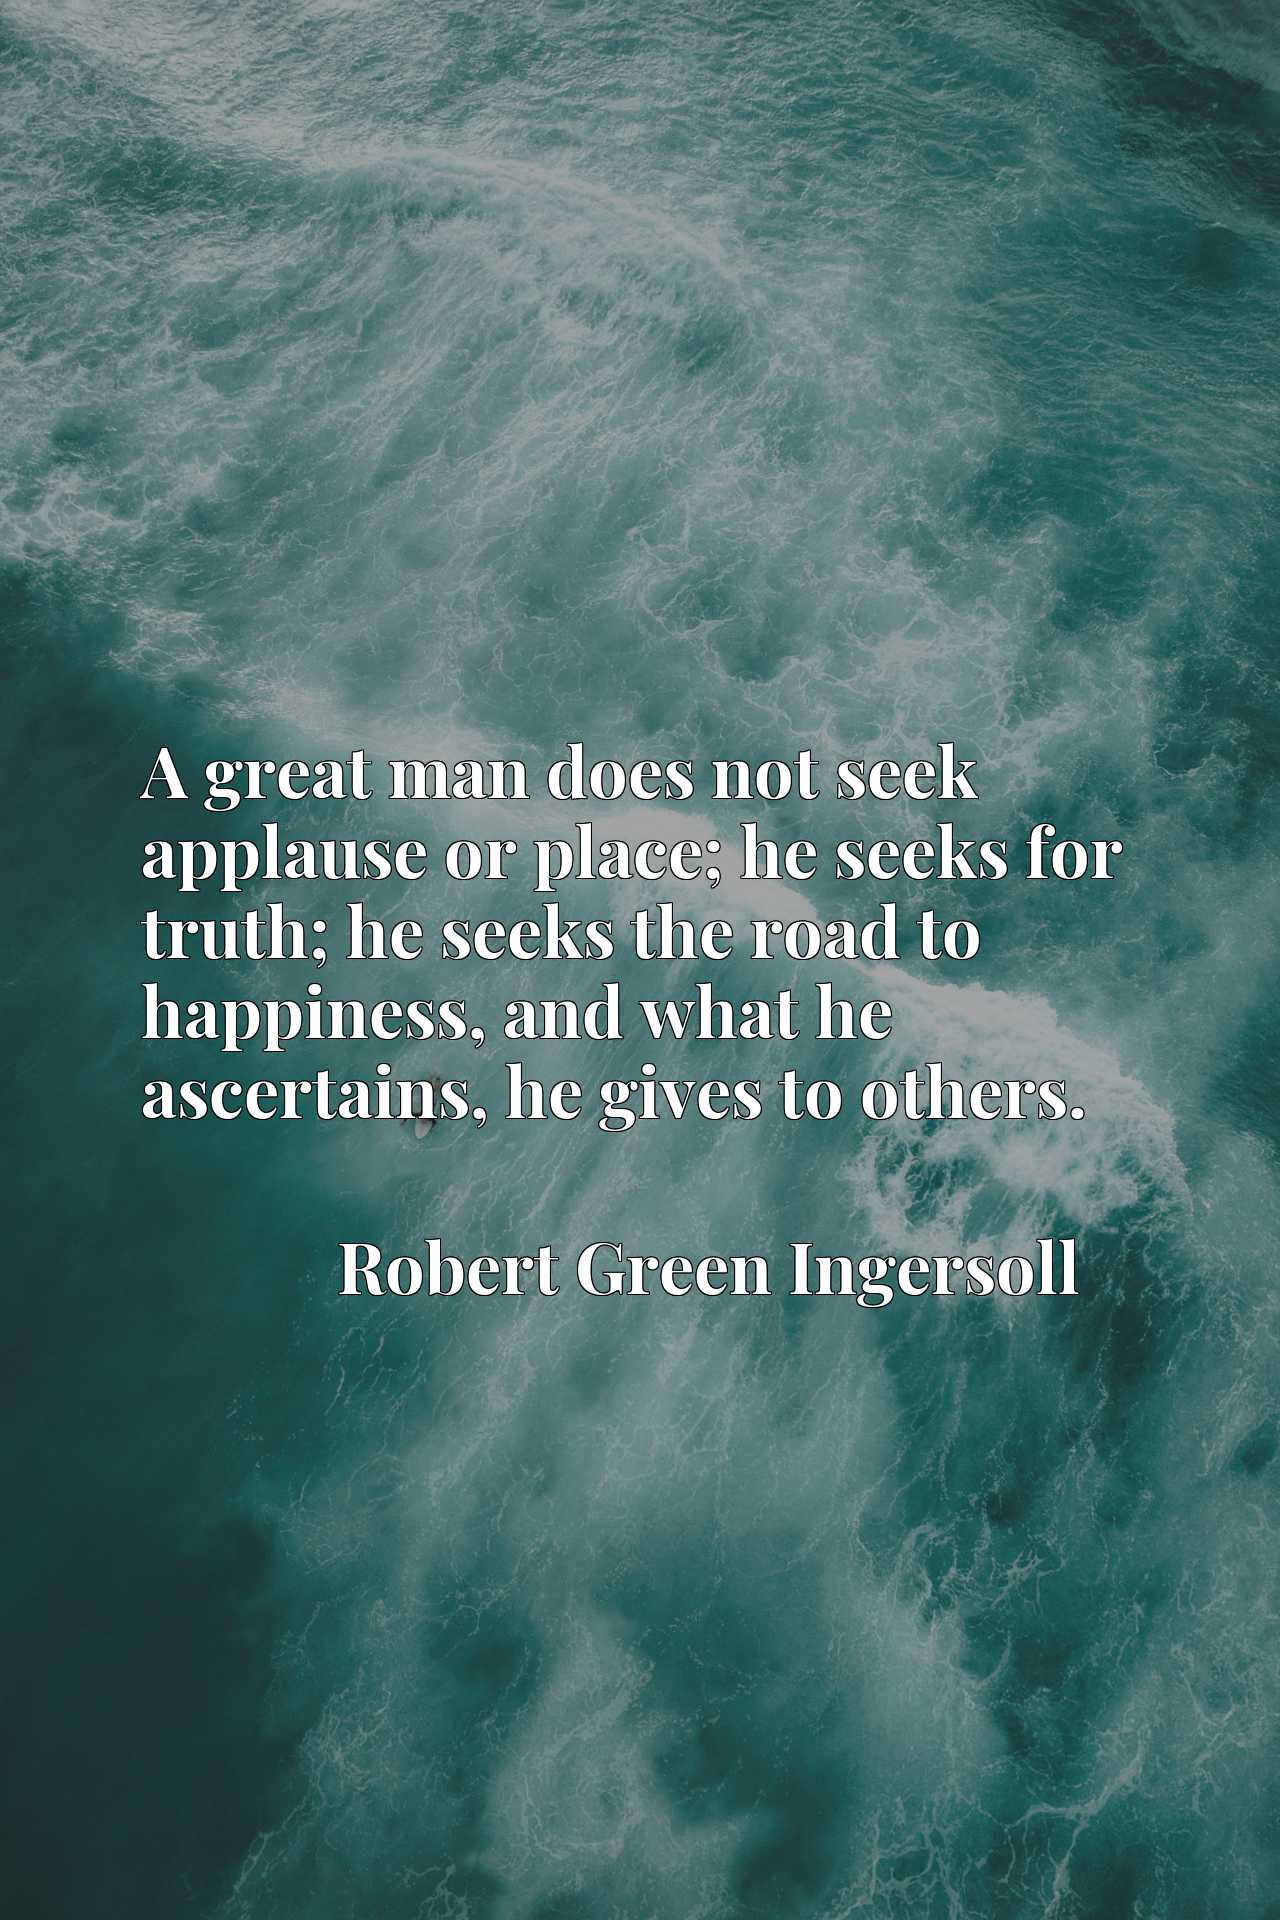 A great man does not seek applause or place; he seeks for truth; he seeks the road to happiness, and what he ascertains, he gives to others.